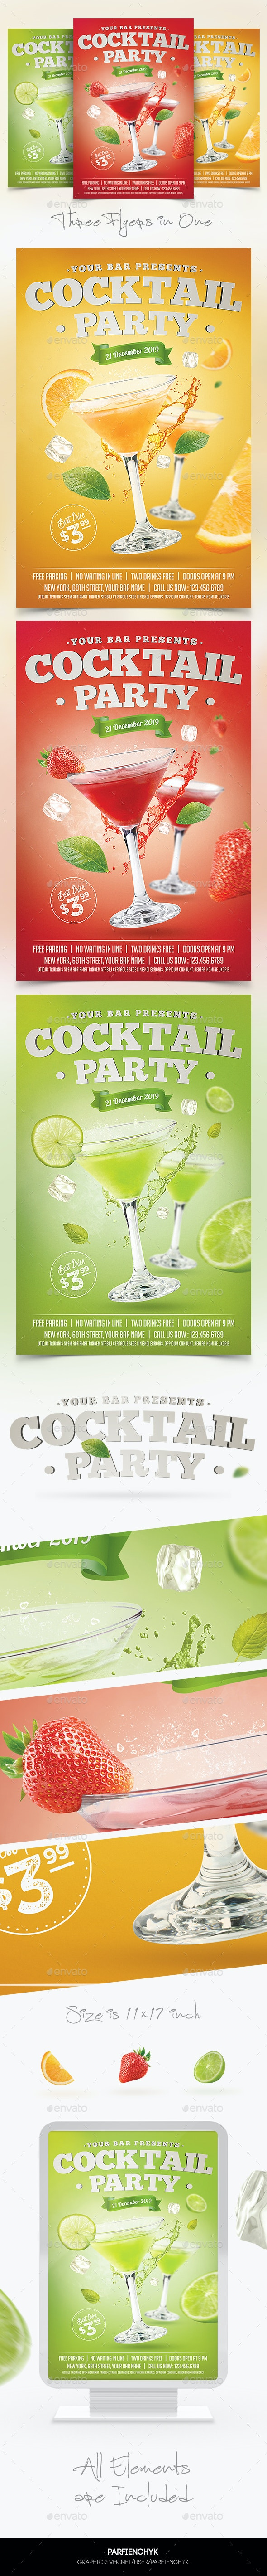 Cocktail Party Flyer Template - Clubs & Parties Events